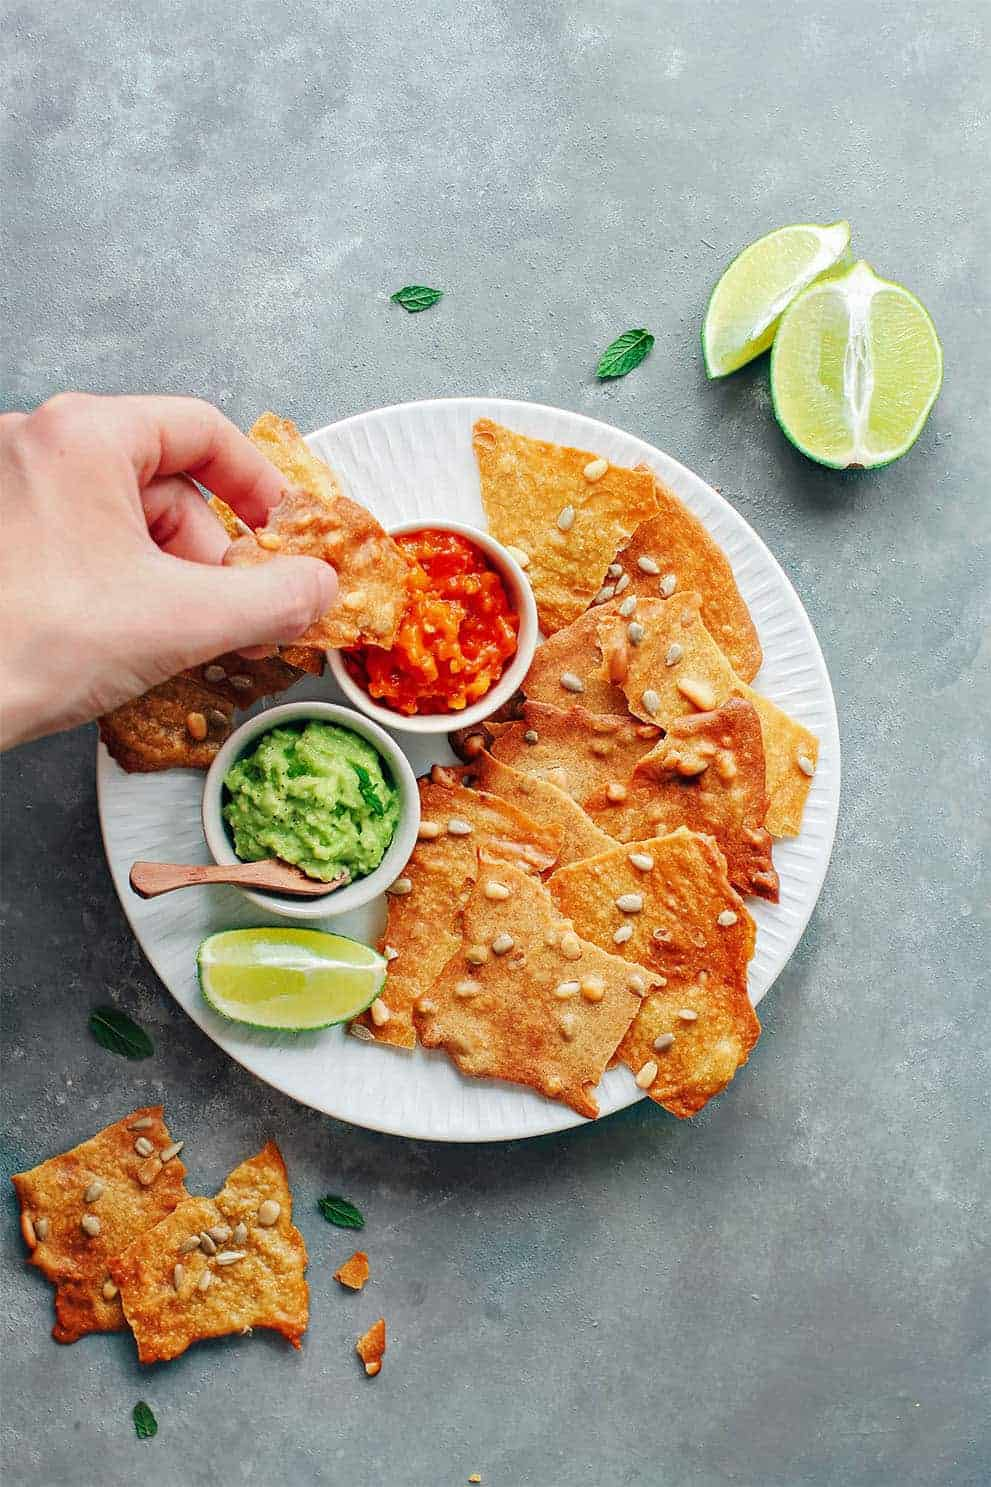 Seedy and Cheesy Tuiles (Vegan + GF) by Full of Plant:these delicious, easy and vegan appetizers are perfect to please a crowd!